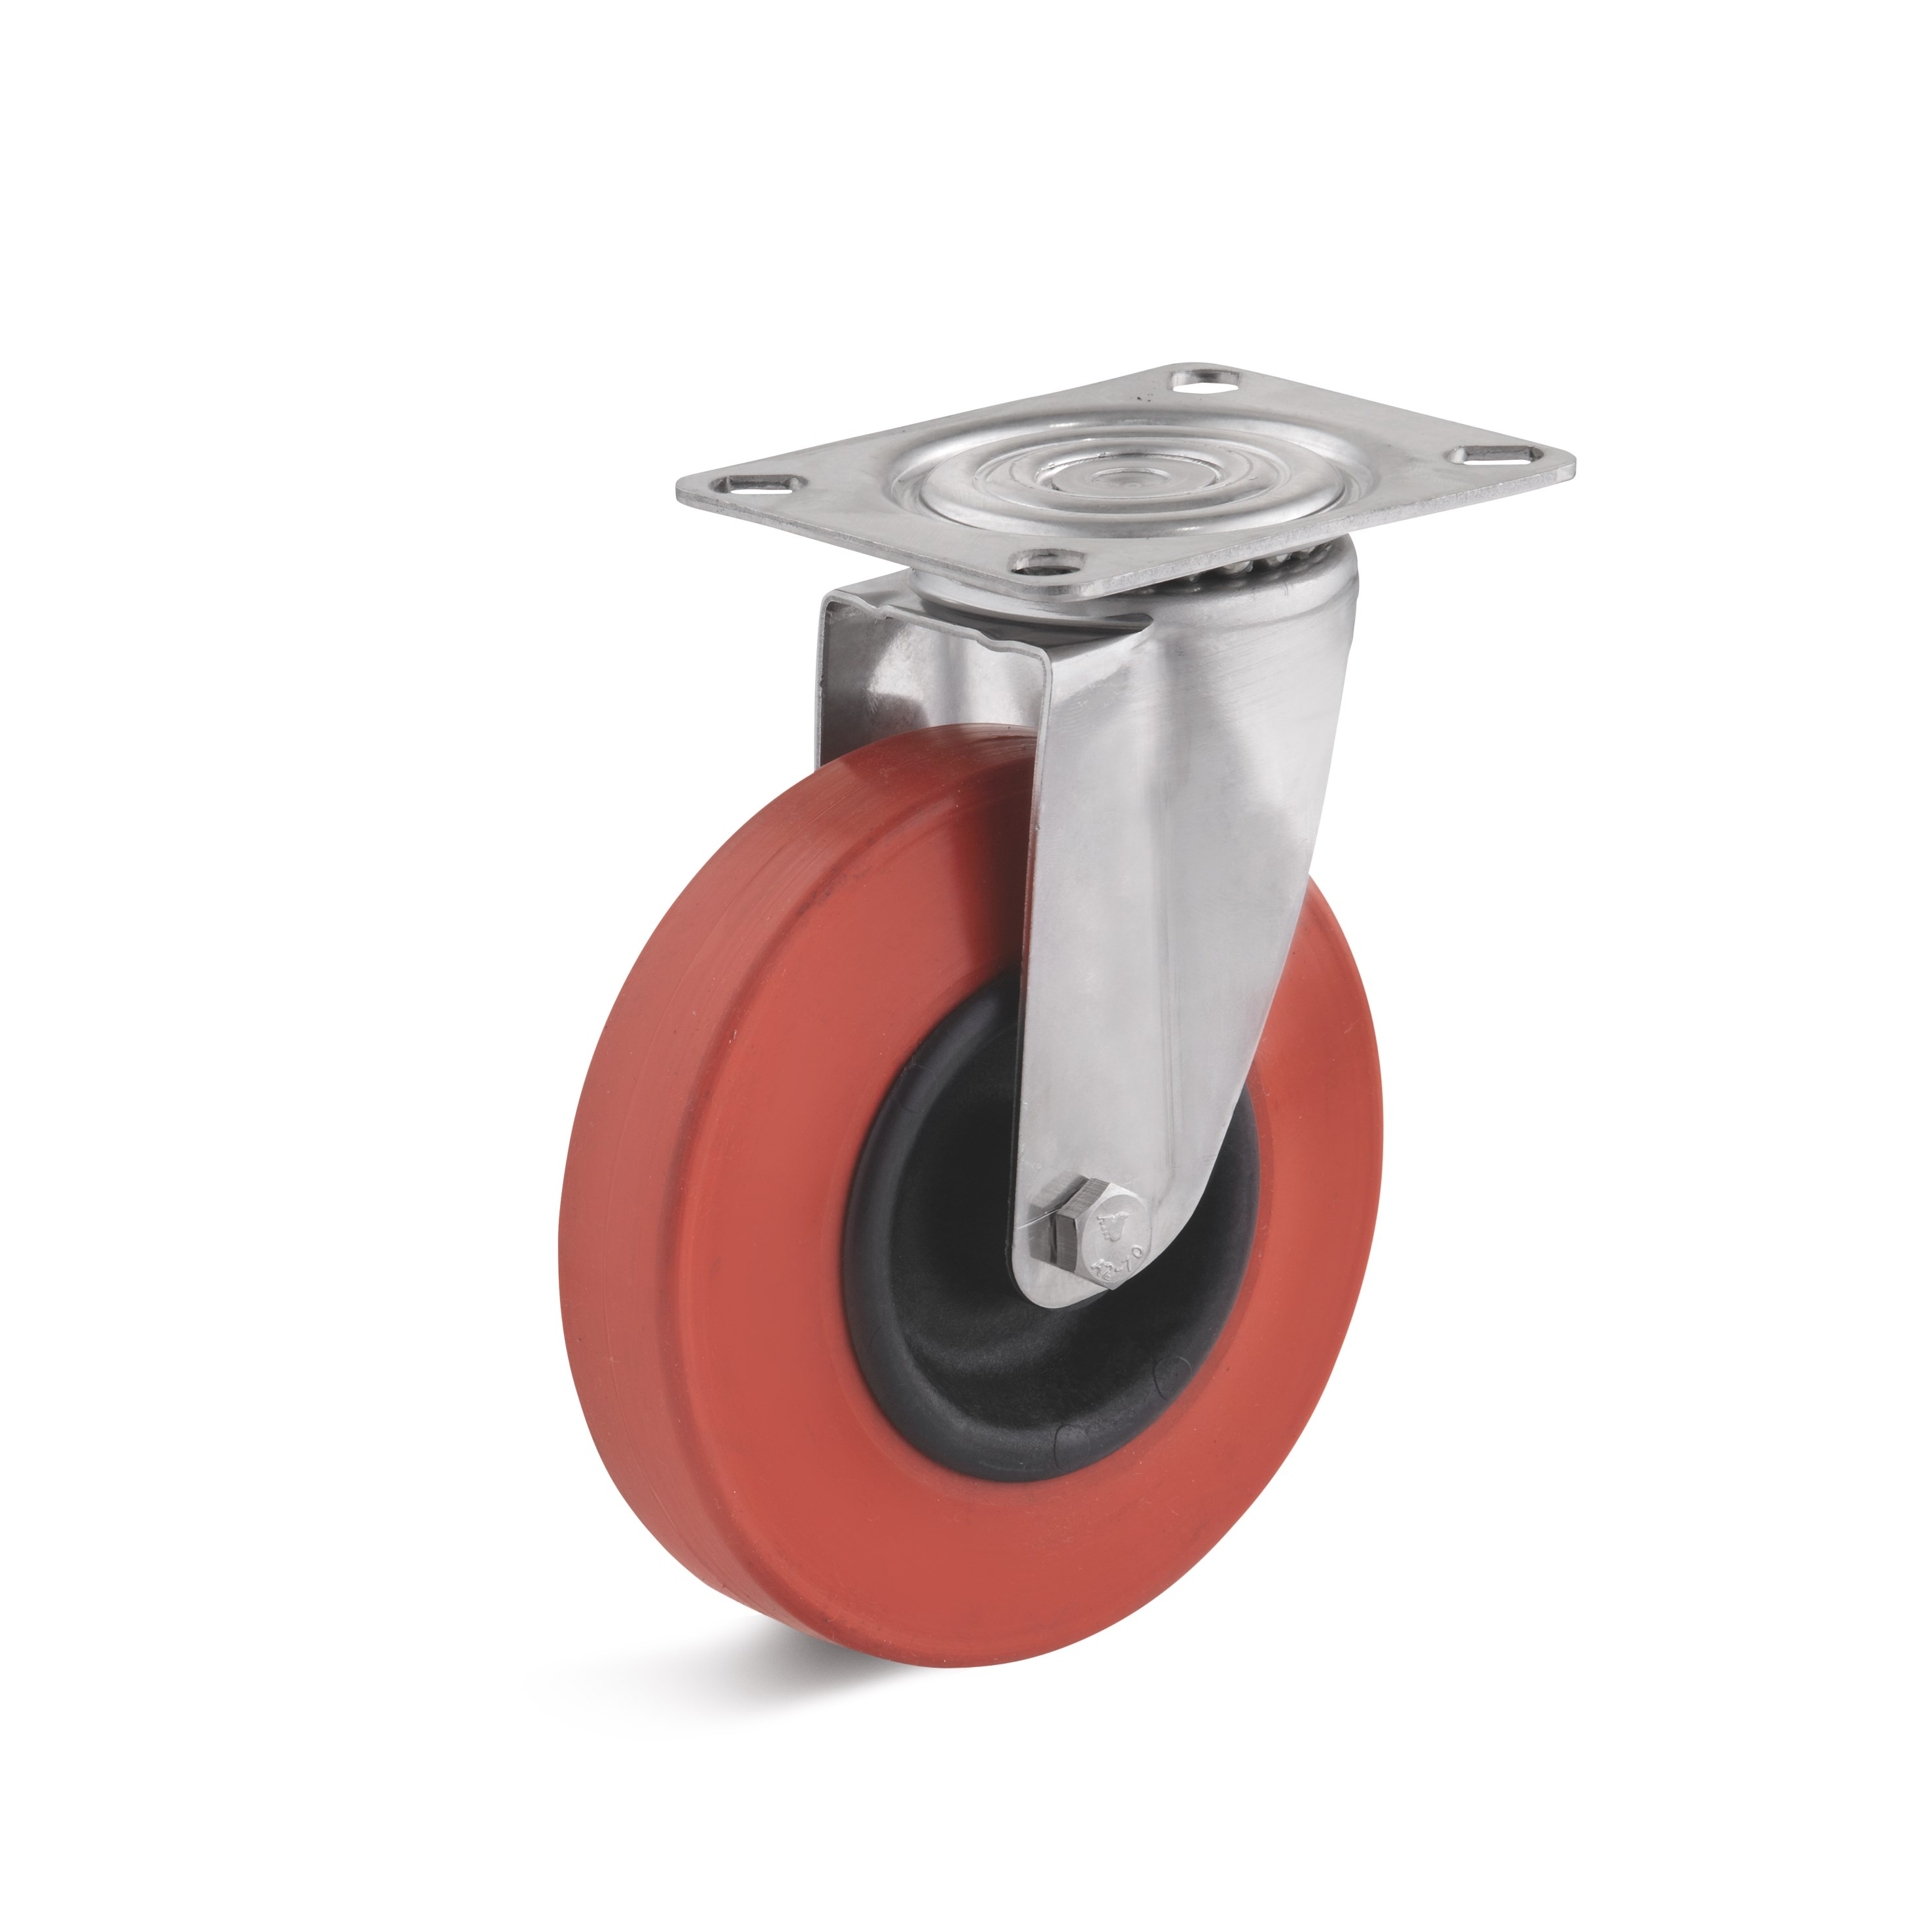 Stainless steel swivel castor with heat resistant rubber wheel